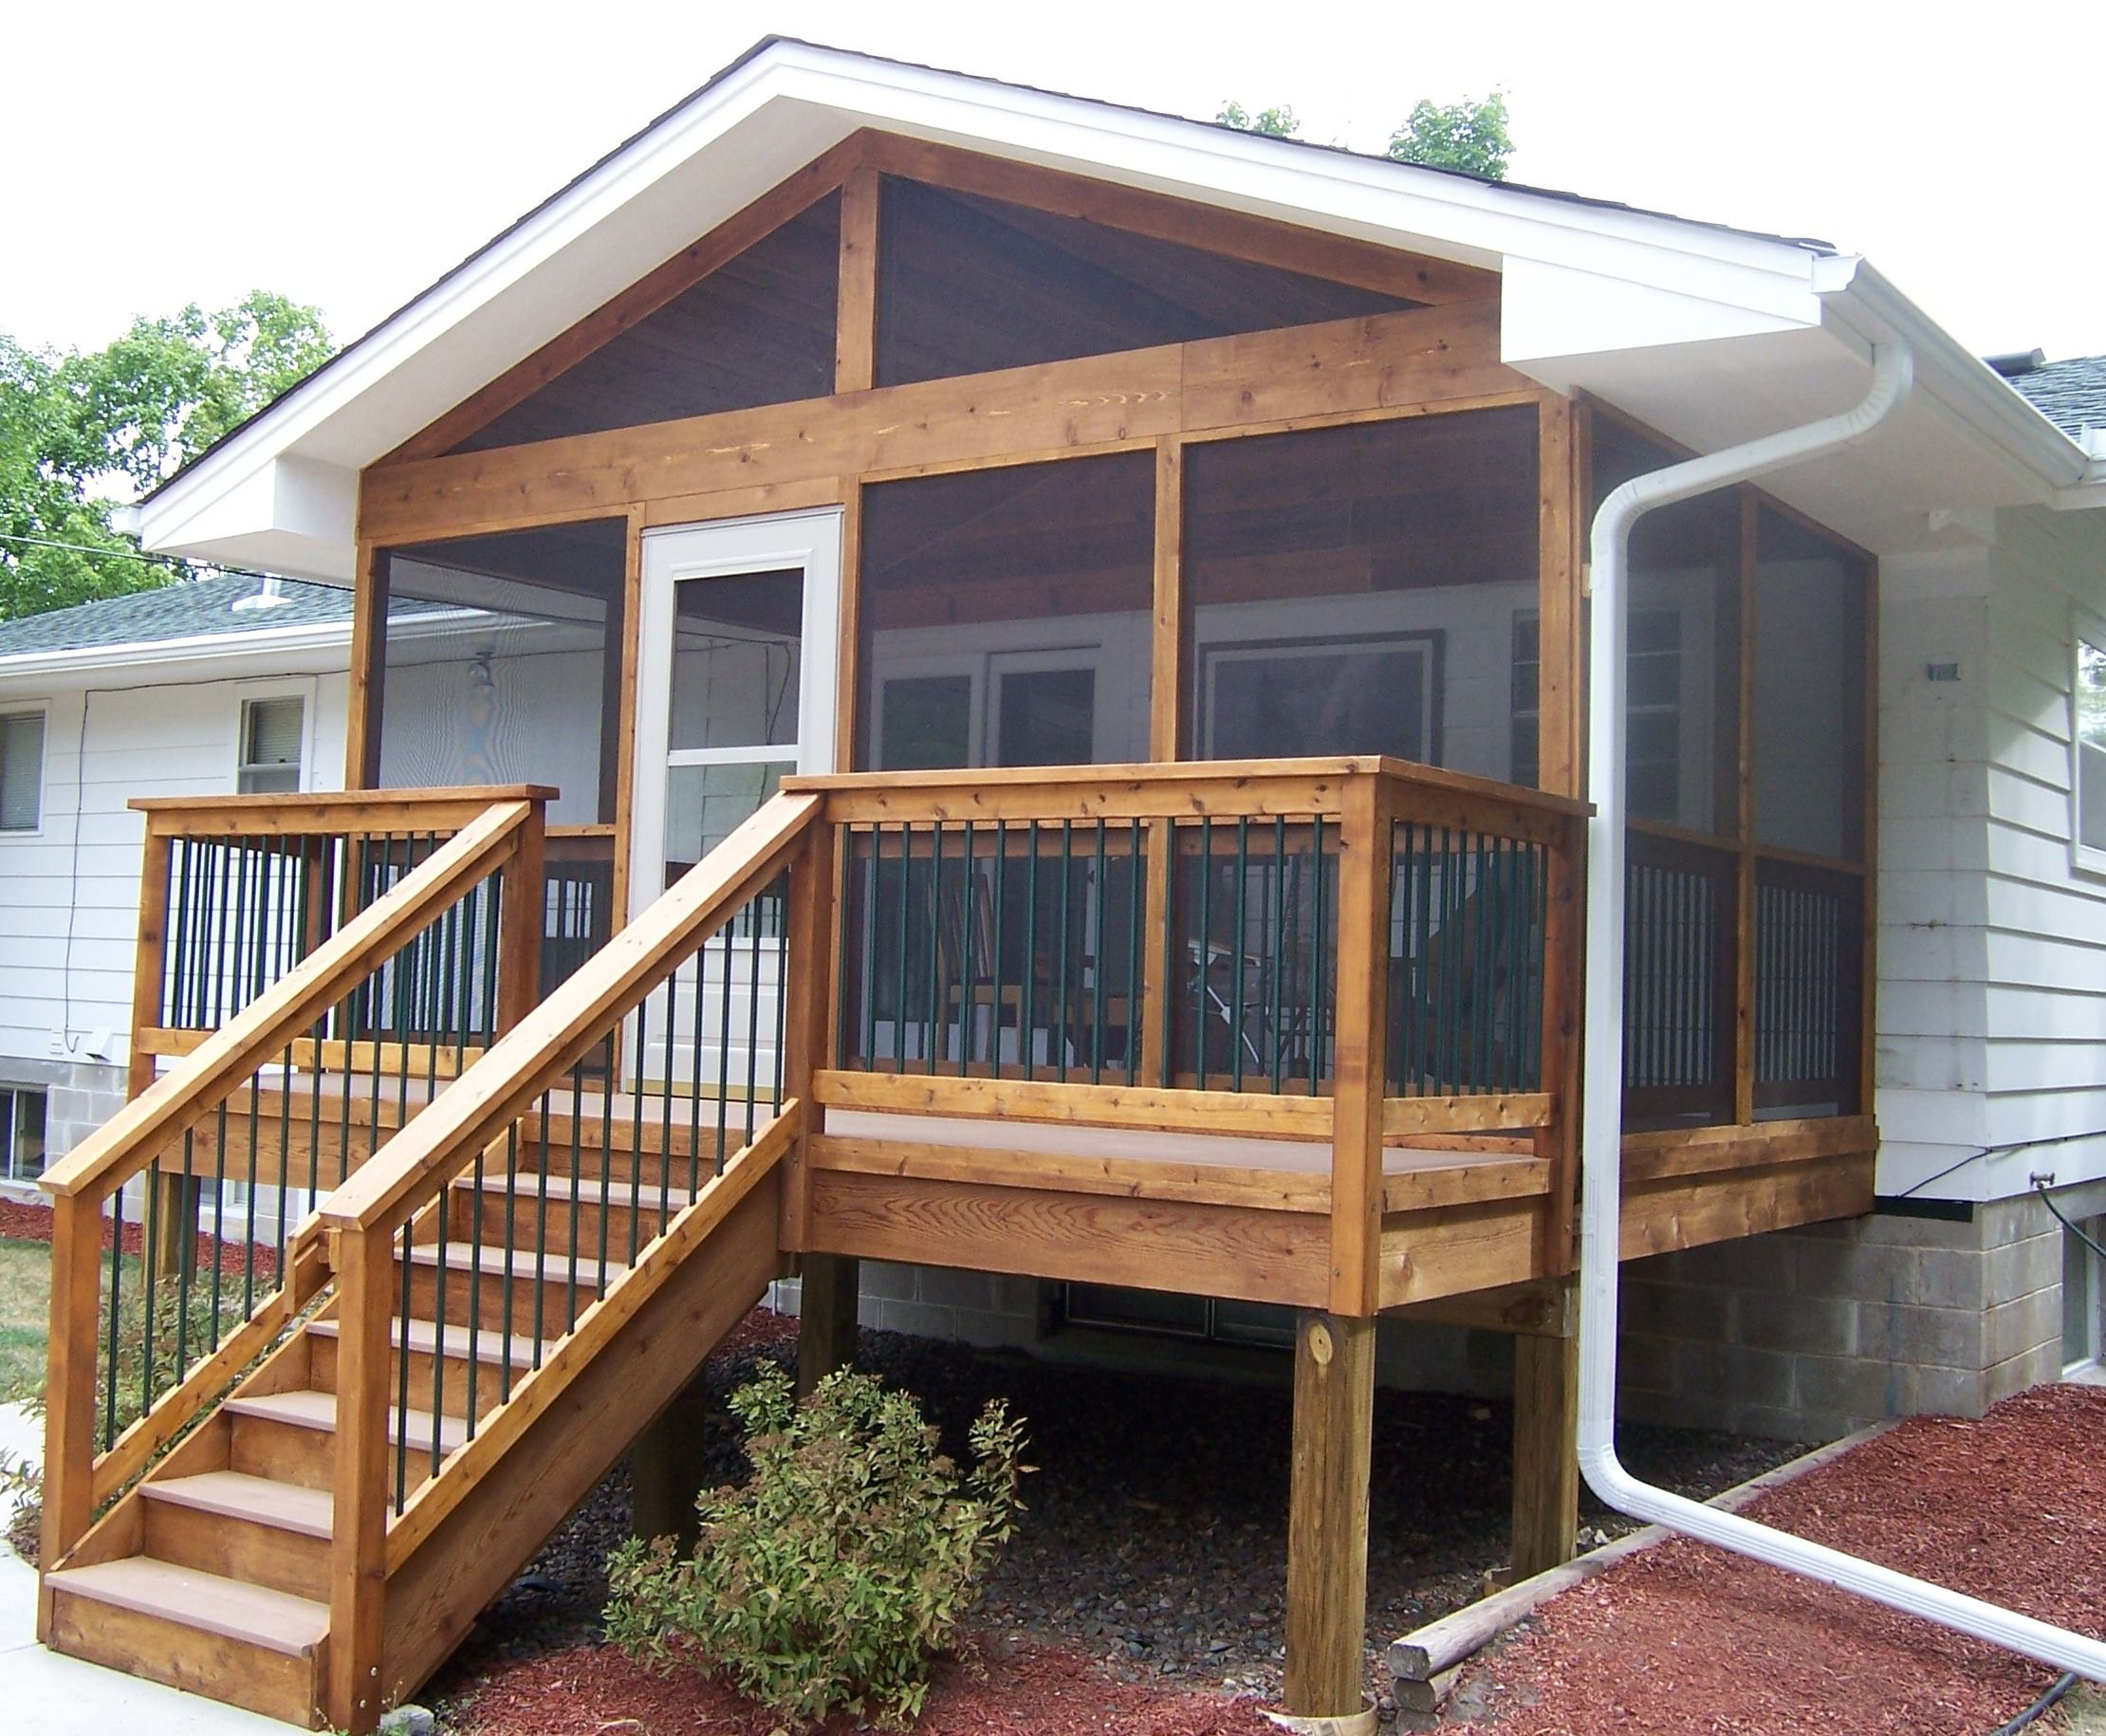 Small decks fronts porches front decks http for Pictures of porches on mobile homes